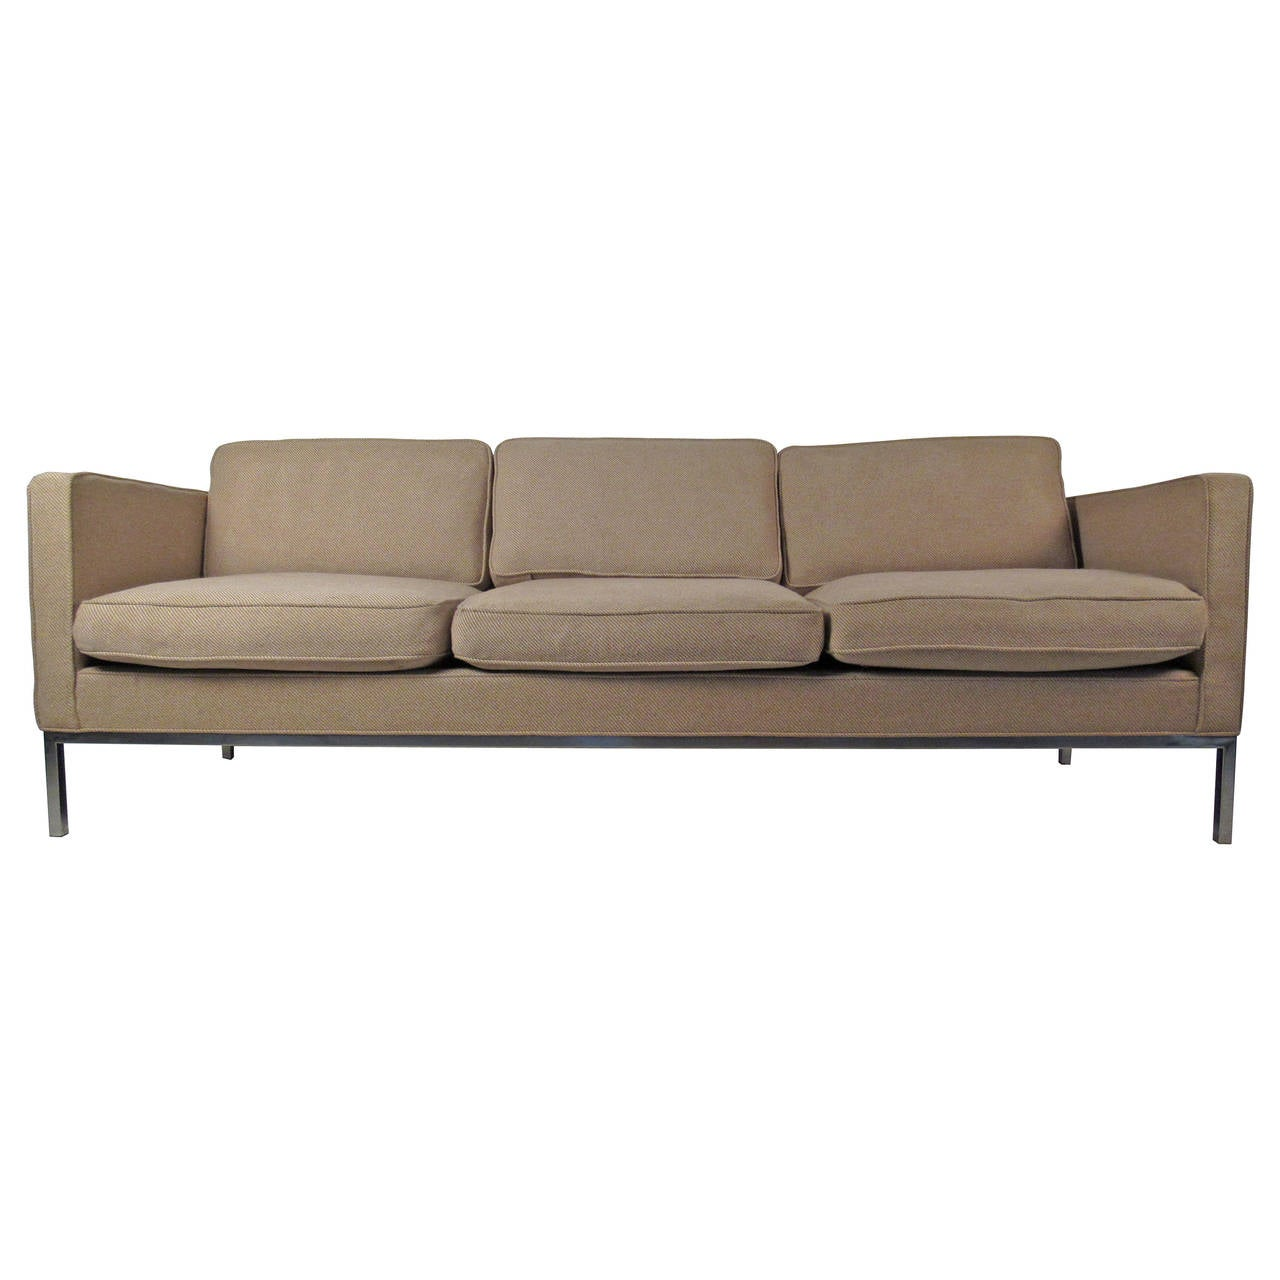 recover sofa cushions rh sofas reviews mid-century modern in the style of knoll for sale at ...